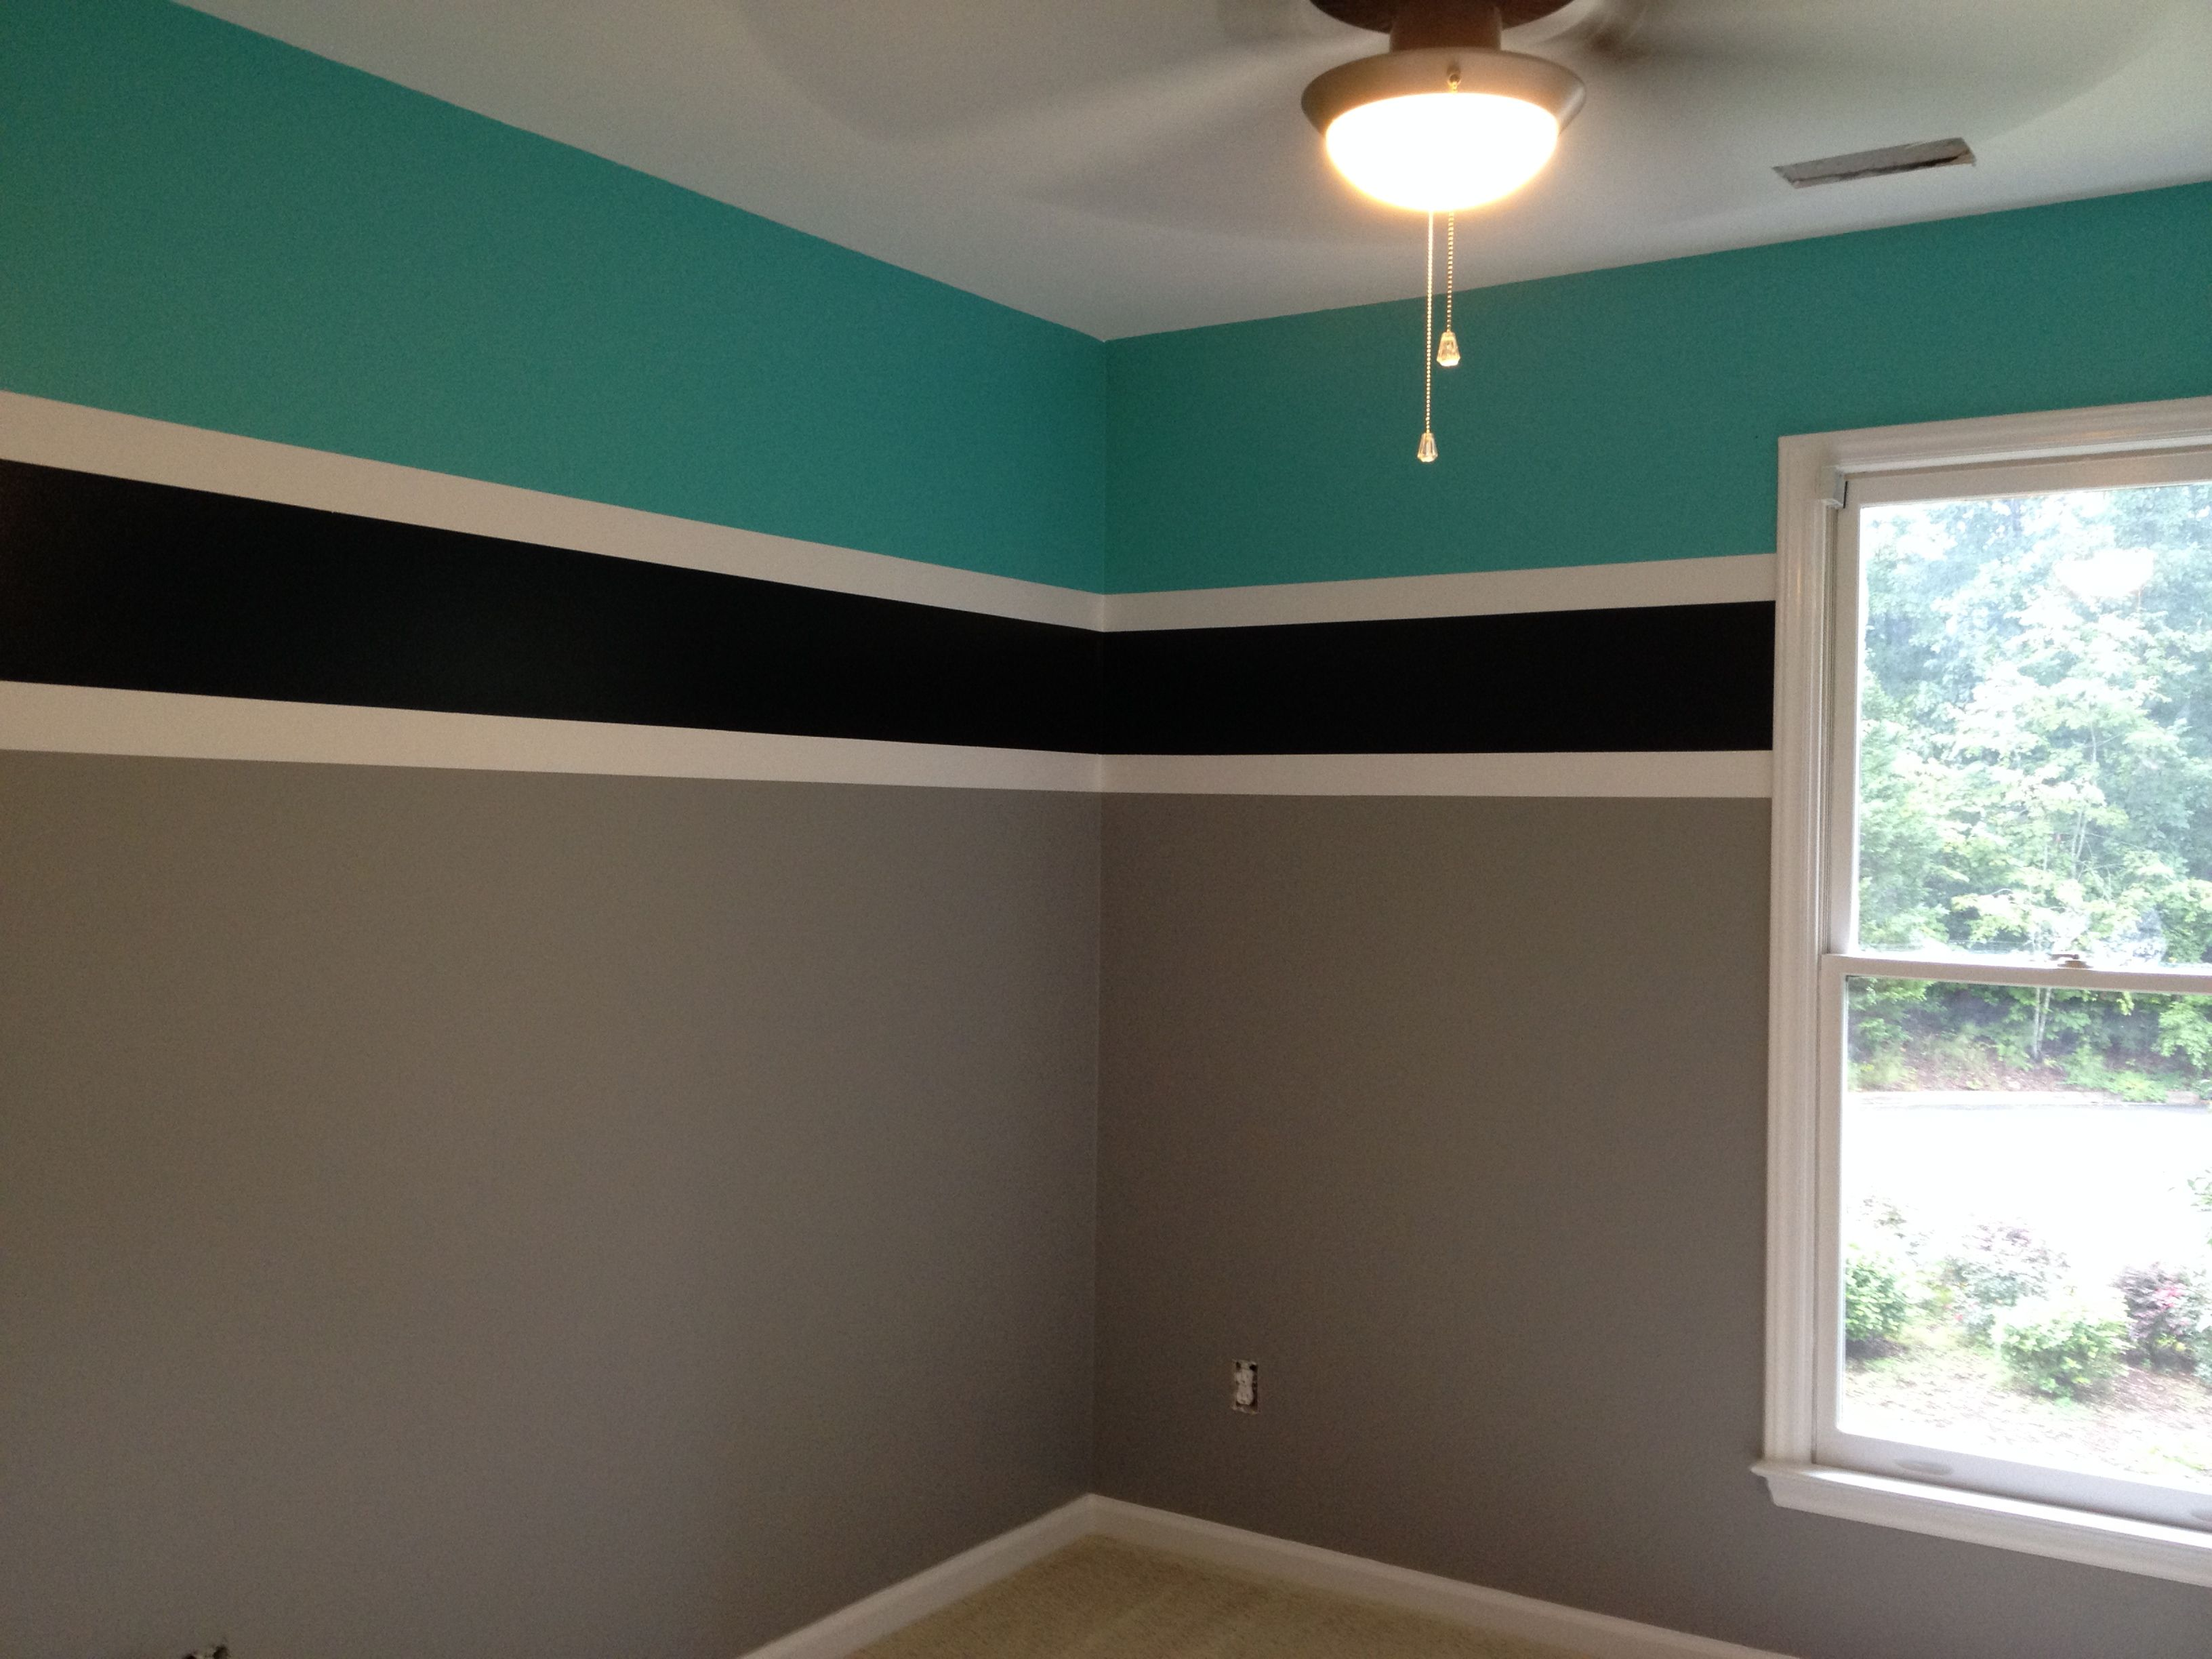 best 20 teenage boy rooms ideas on pinterest boy teen room final product teenage boys room colors for a swimmer benjamin moore teal tone